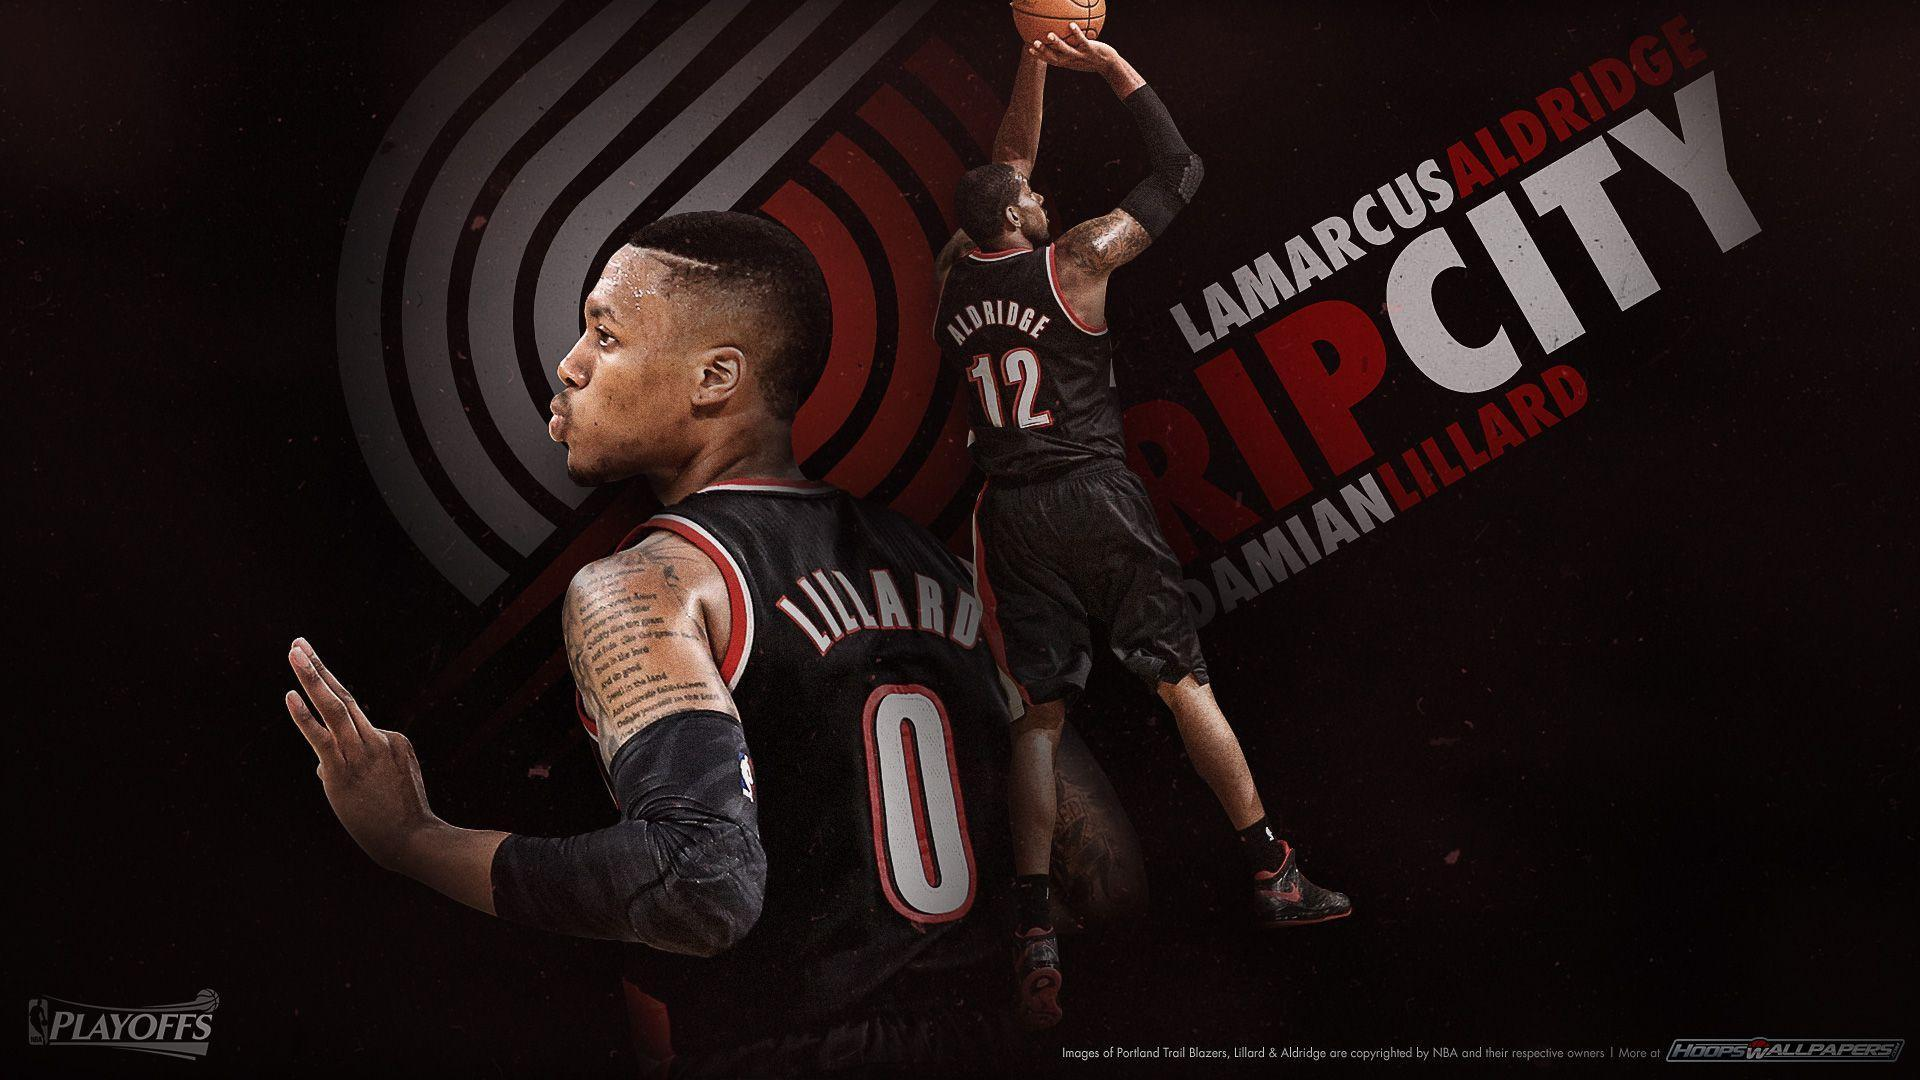 Damian Lillard Wallpapers - WallpaperSafari